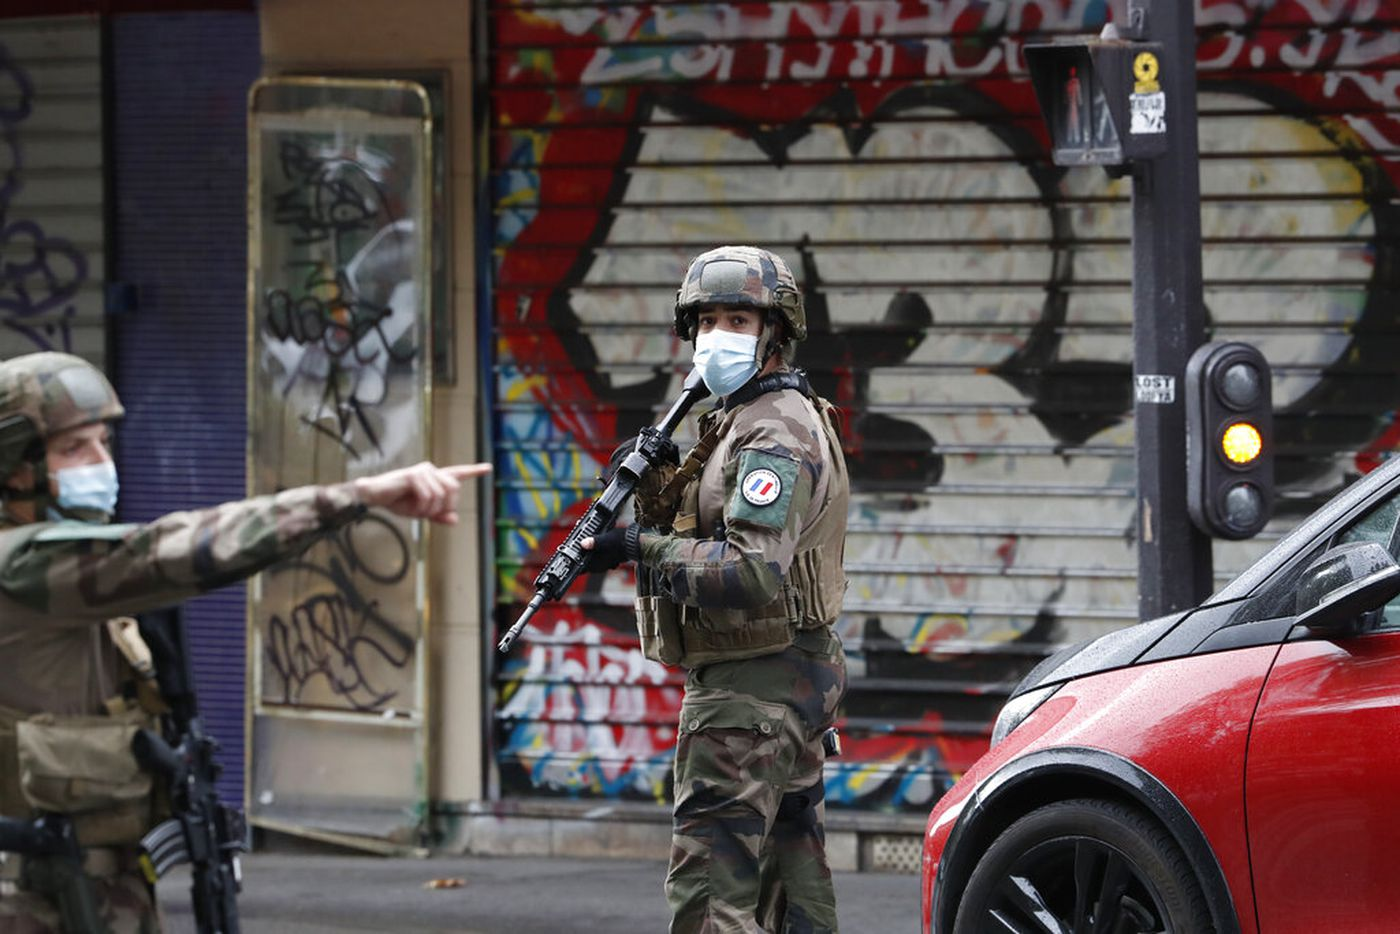 Official: Paris stabbing suspect targeted Charlie Hebdo